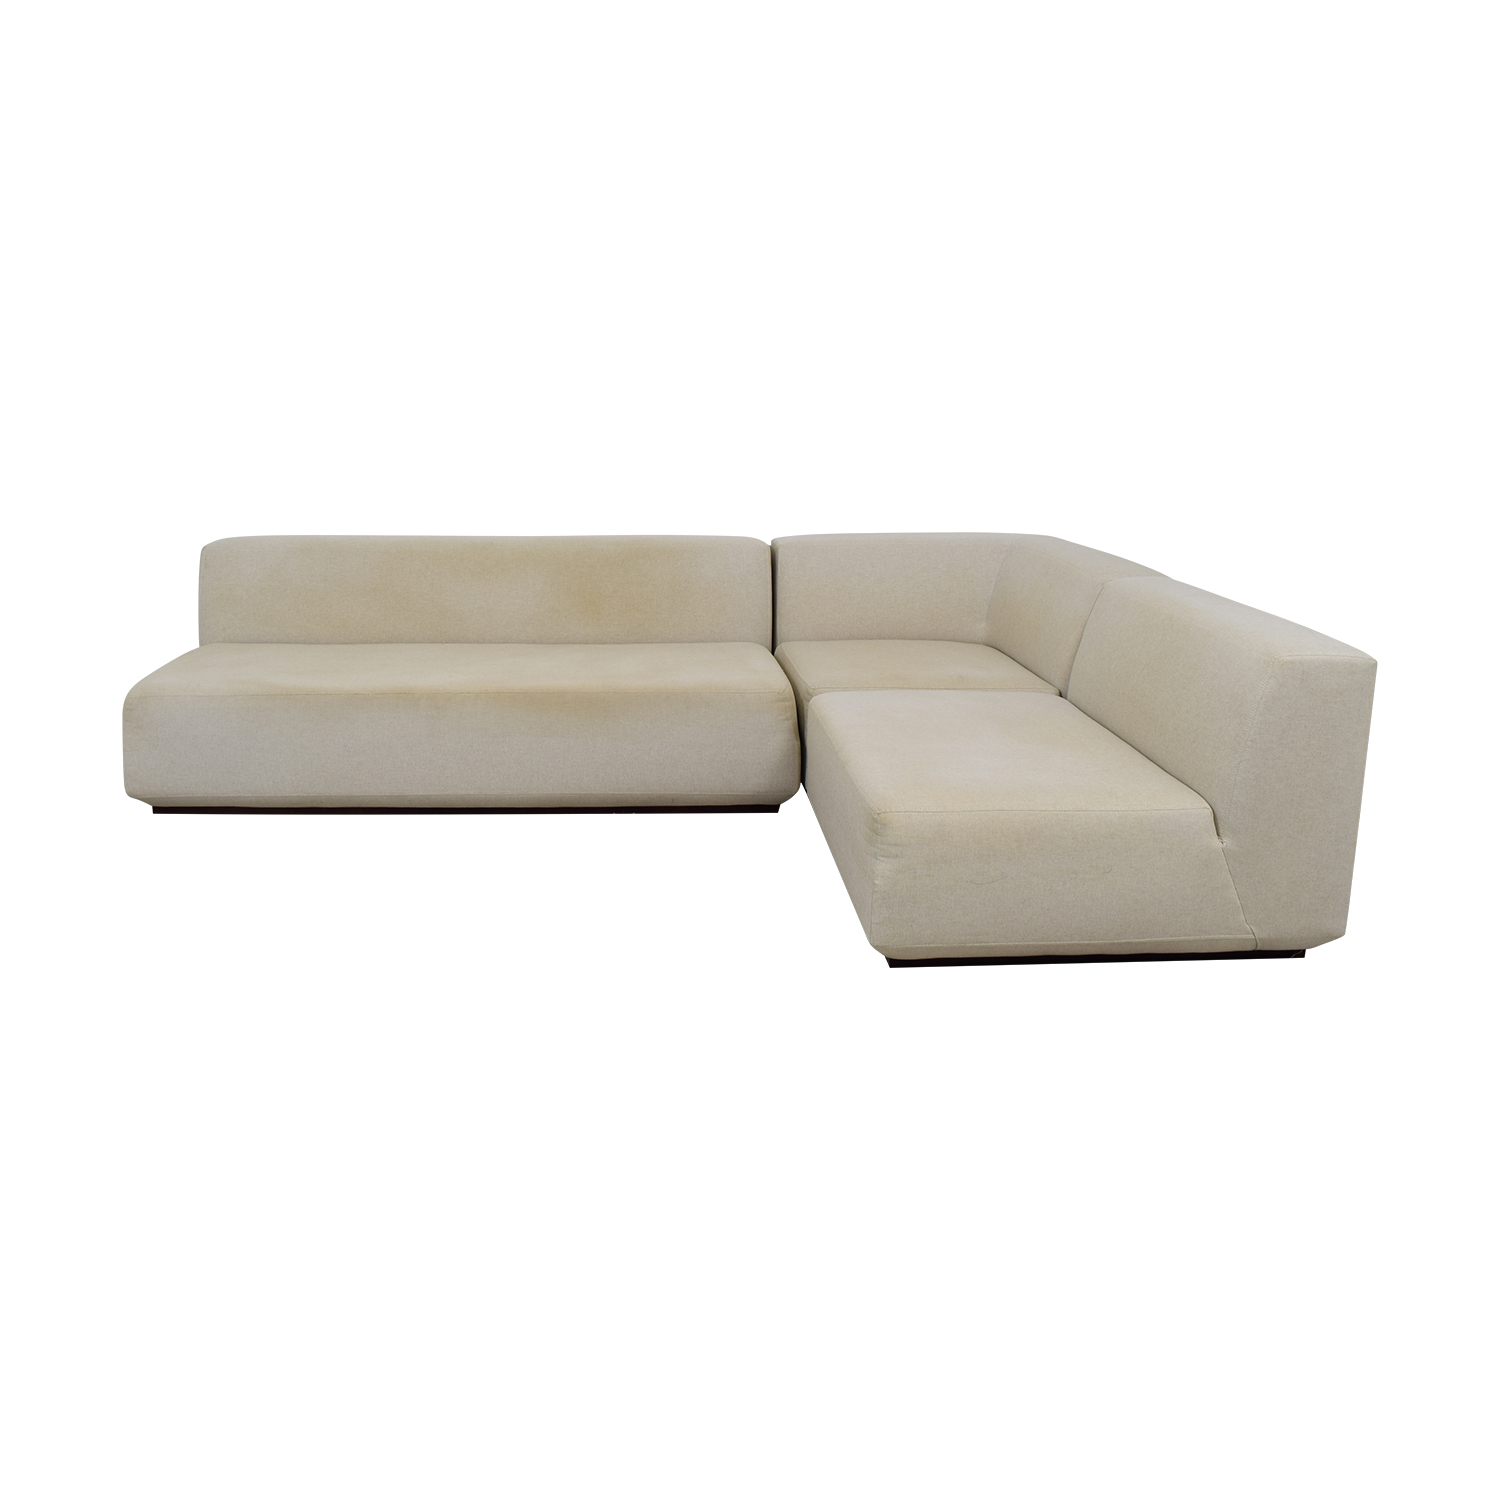 West Elm West Elm Beige L-Shaped Sectional used